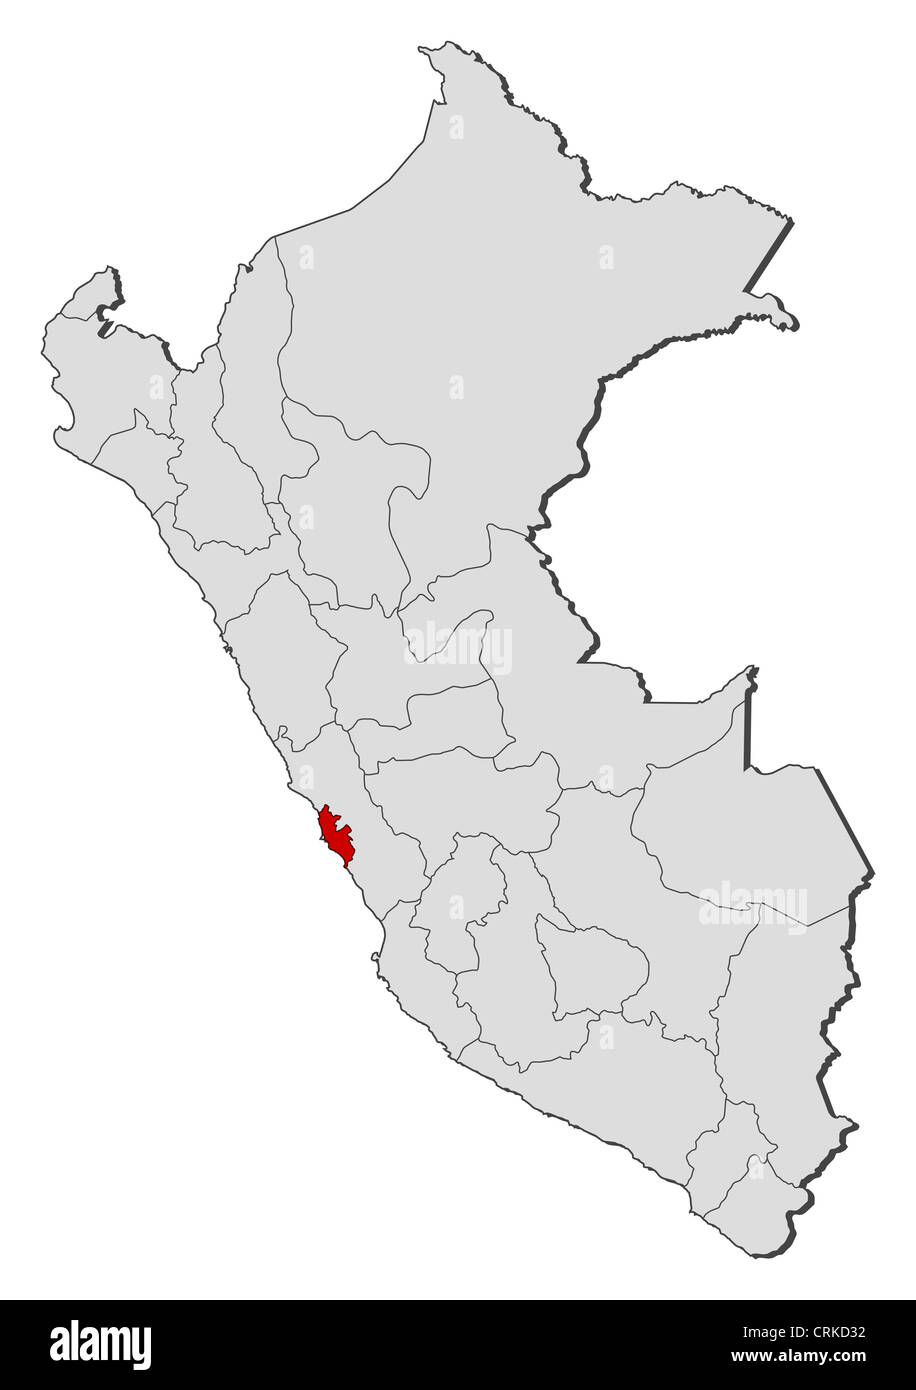 Political map of Peru with the several regions where Lima Region is highlighted. - Stock Image